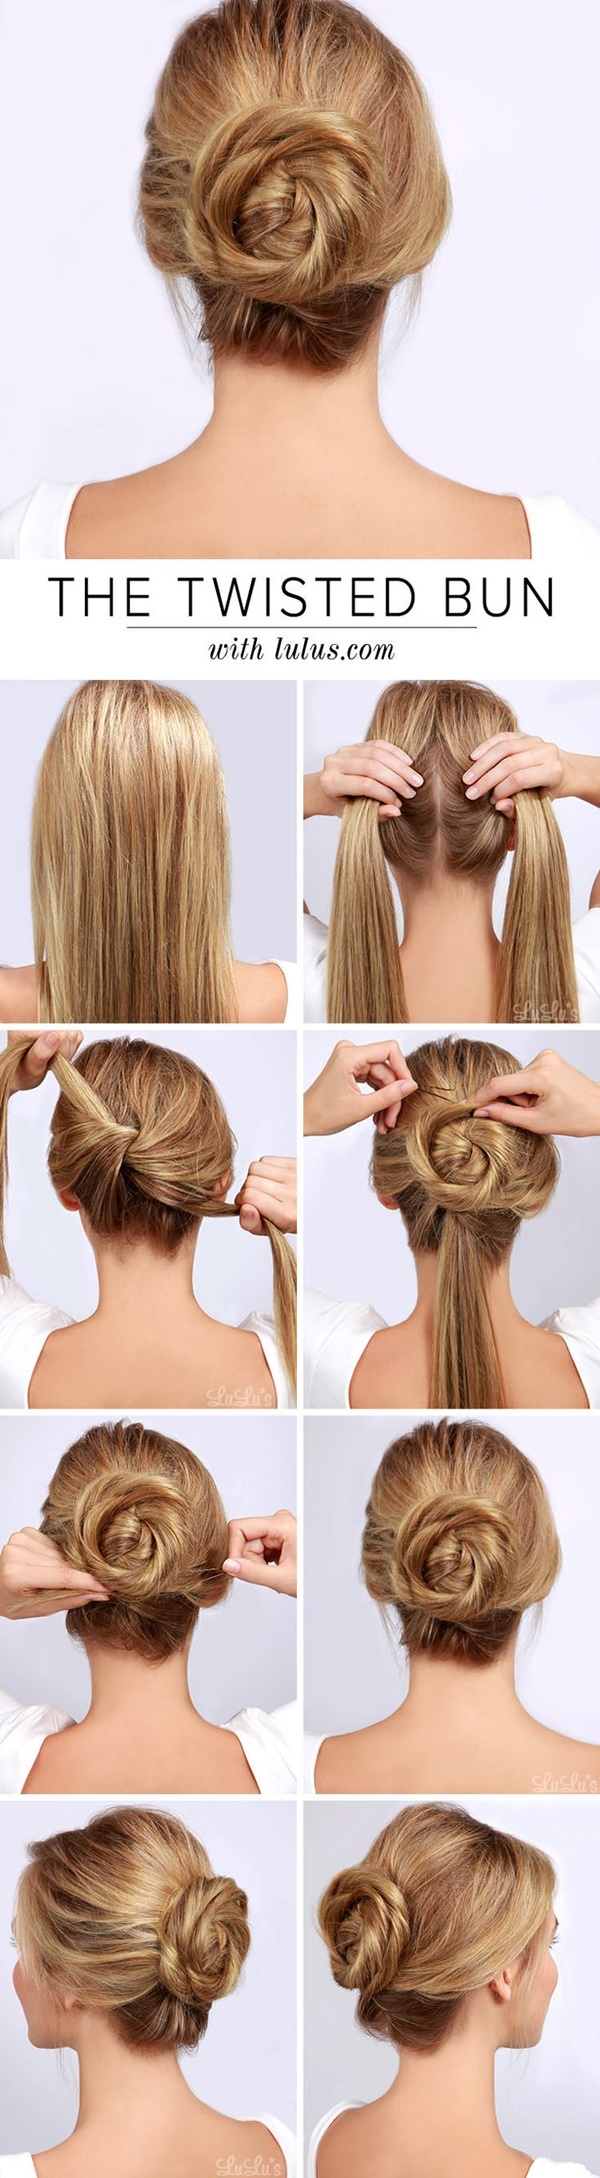 Easy Bun Hairstyles For Long Hair And Medium Hair20